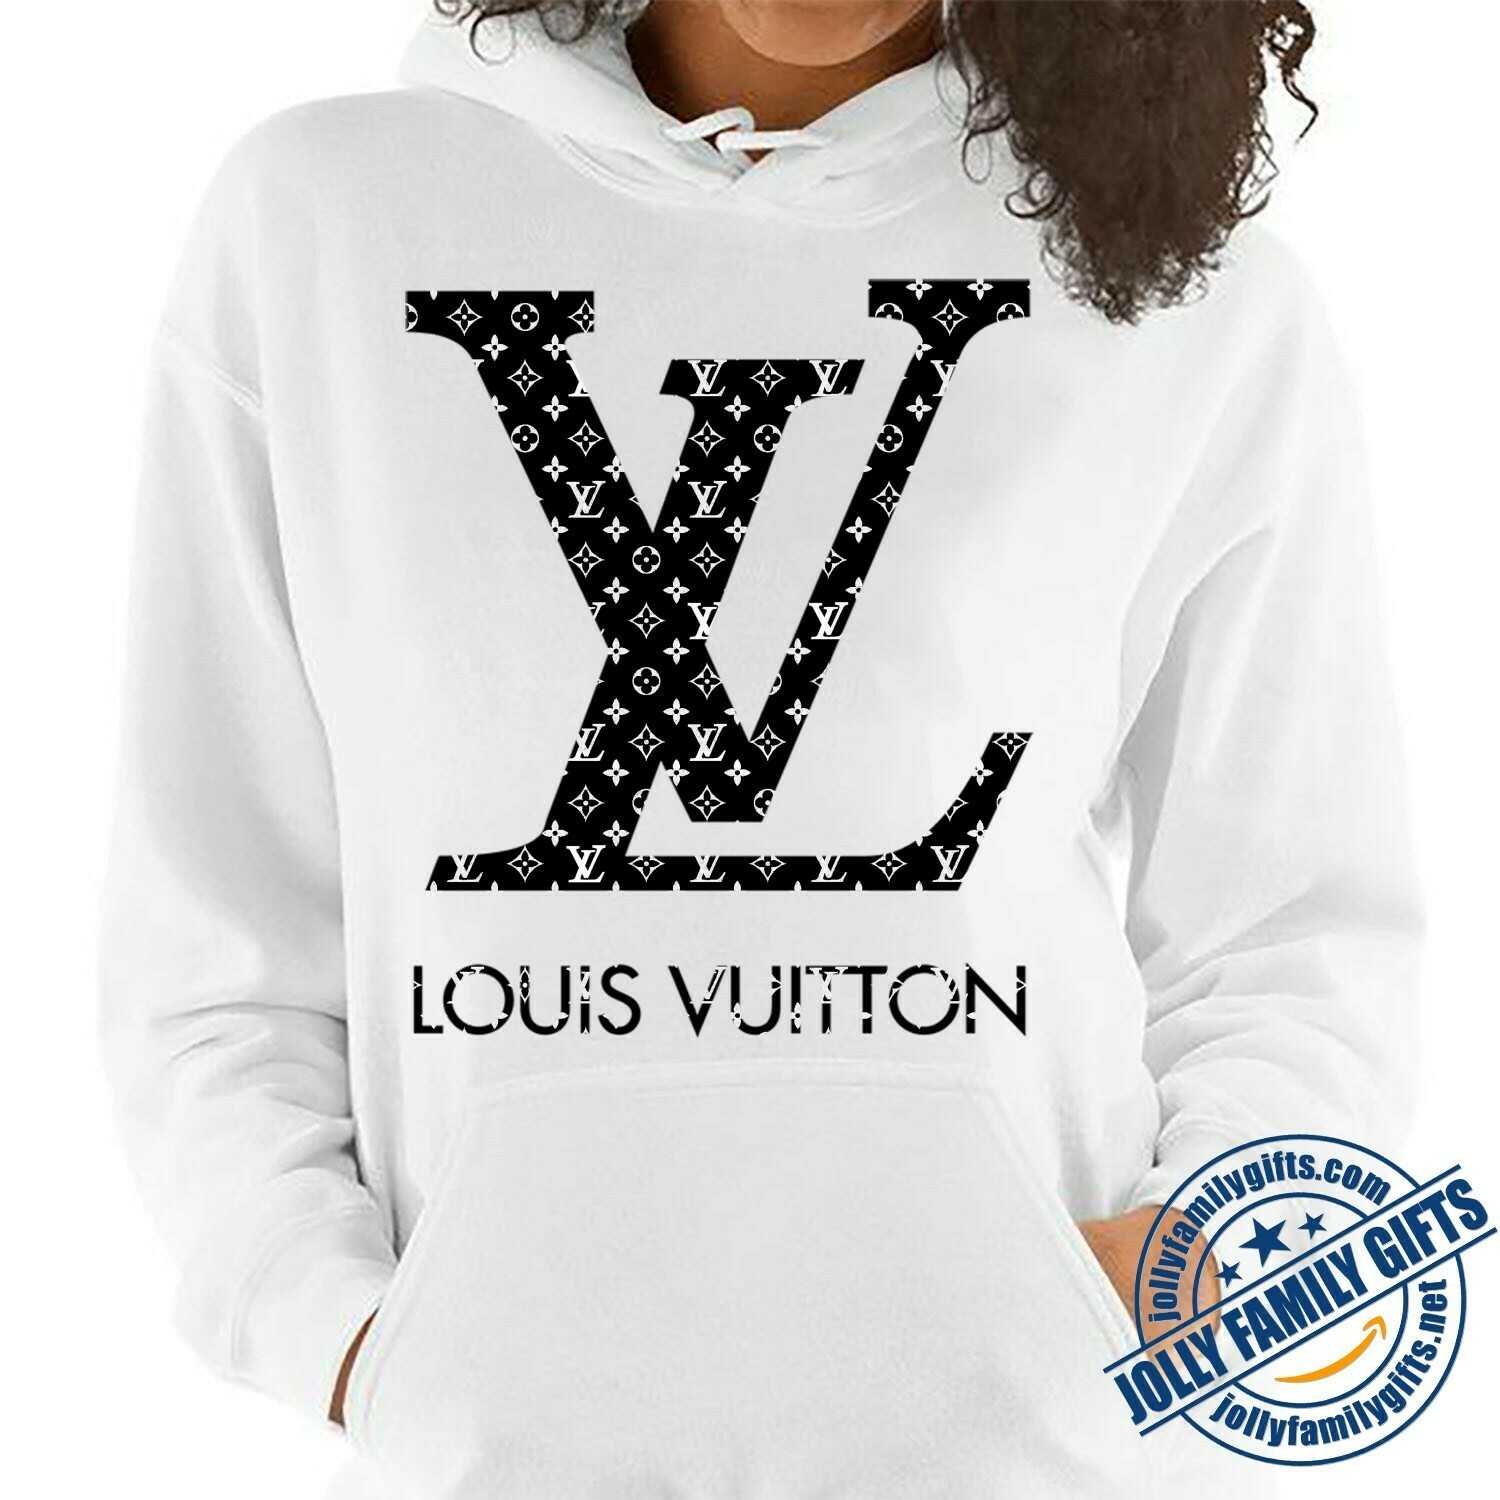 Classic Logo Louis Vuitton Shirt LV T-shirt Louis Vuitton Logo Fashion LV Design Fashion Shirts for Women Men Vintage  Unisex T-Shirt Hoodie Sweatshirt Sweater for Ladies Women Men Kids Youth Gifts